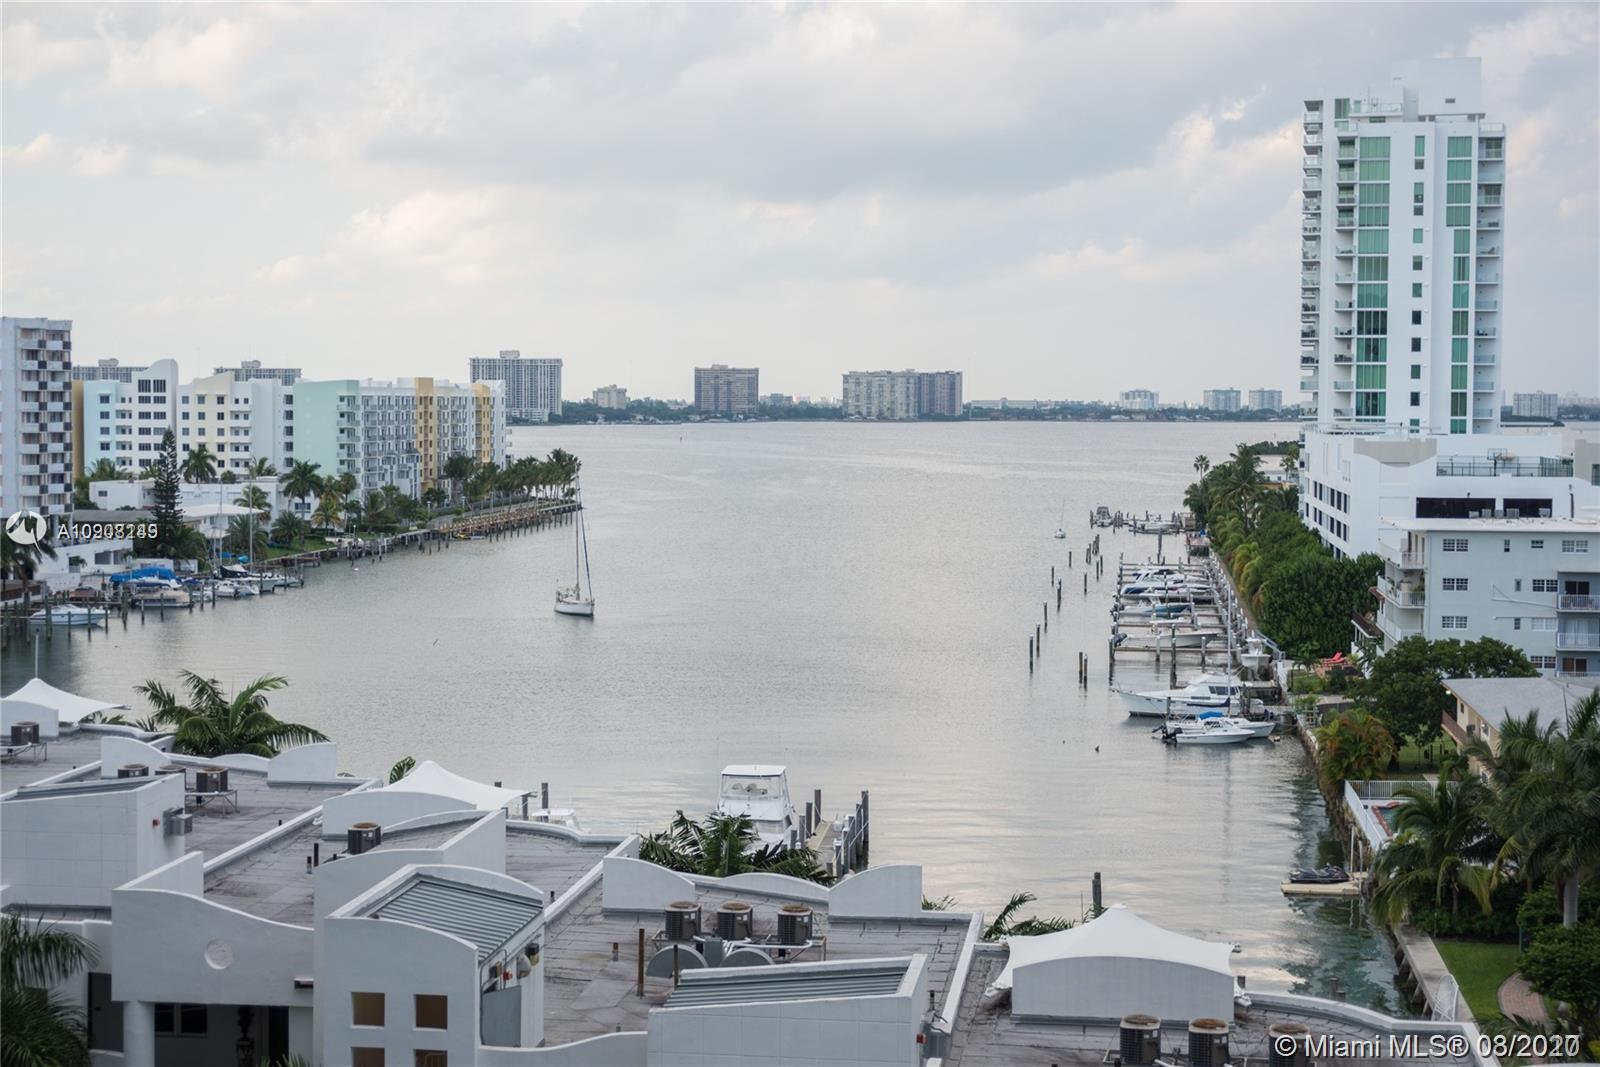 Breathtaking water views from this luxurious condo in the Heart of North Bay Village. 2 Bedrooms and 2 full baths,nice open kitchen with stainless steel appliances, large balcony, washer and dryer in unit, bamboo floors complete apt and marble on balcony. Full amenities in the building, 24 hours security, valet, pet friendly, private marinas, pool and exercise room.